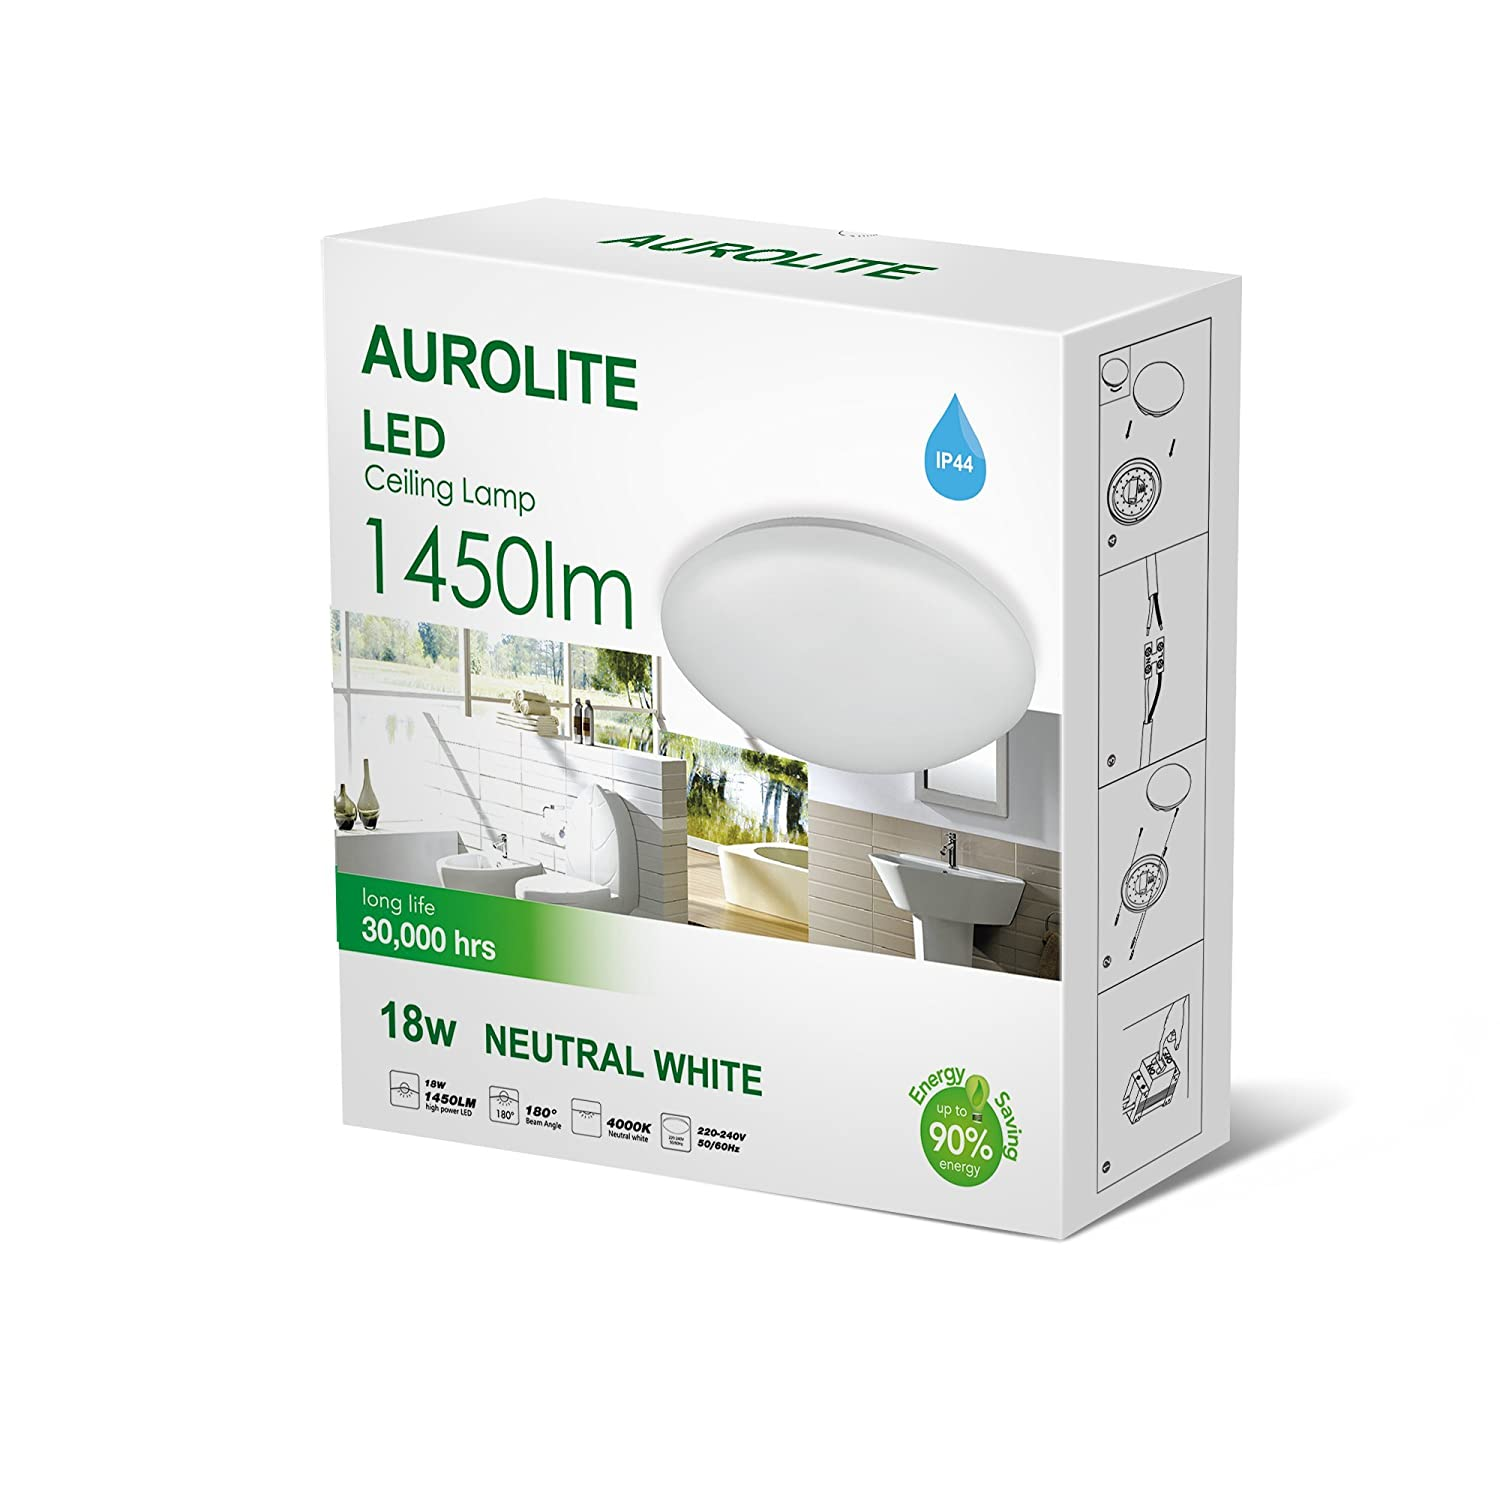 AUROLITE LED 18W IP44 Ceiling Lights, Ø 26cm, 4000K, 1450LM, Lighting for Bathroom, Kitchen, Hallway, Office, Flush Ceiling Light, Bath Ceiling Light, High Quality, 1 Year Warranty -18W 4000K- [Energy Class A+]